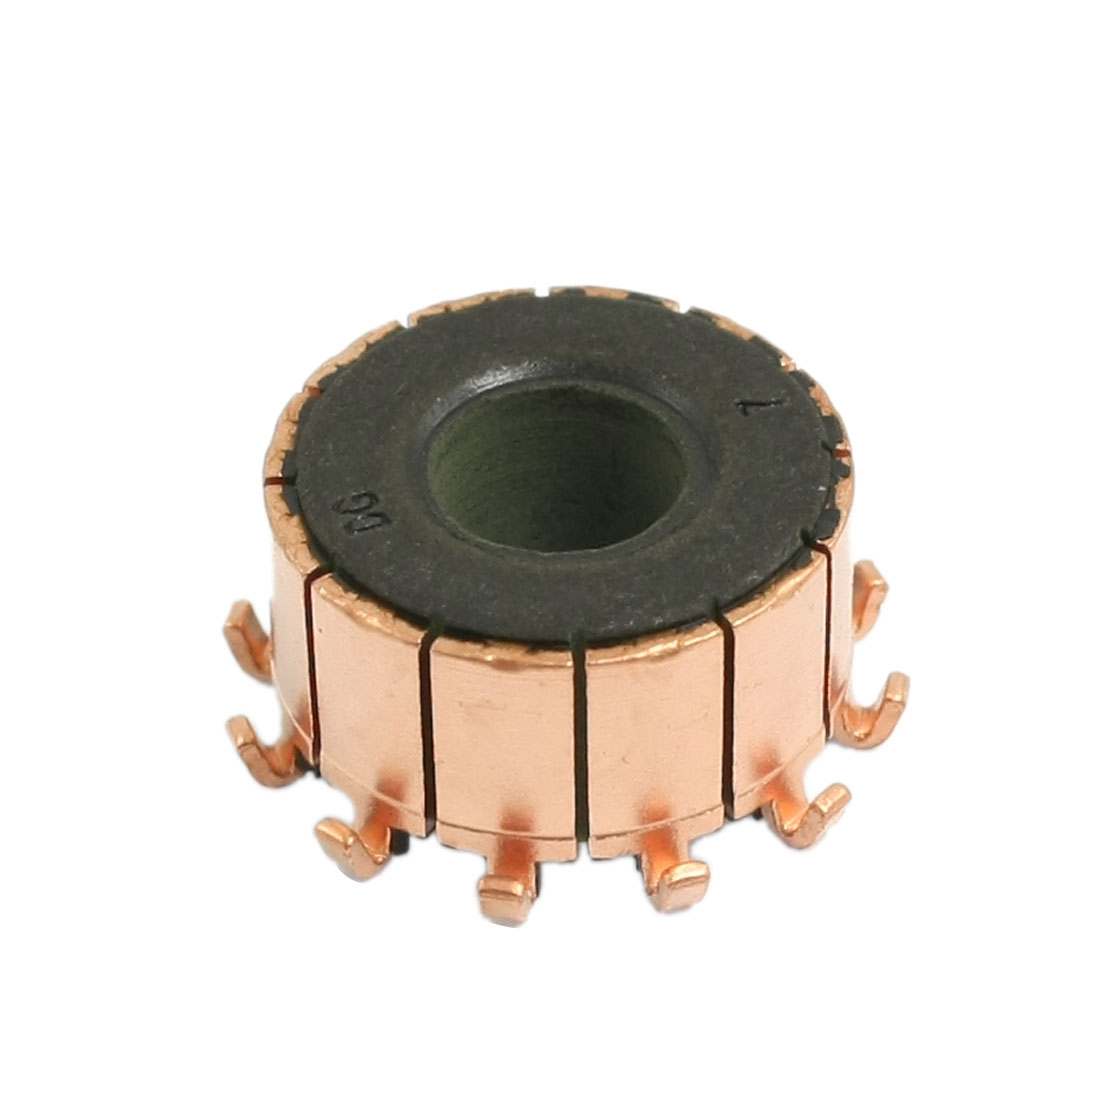 10mm x 18.9mm x 10.5mm 12 Gear Tooth Copper Shell Electric Motor Commutator